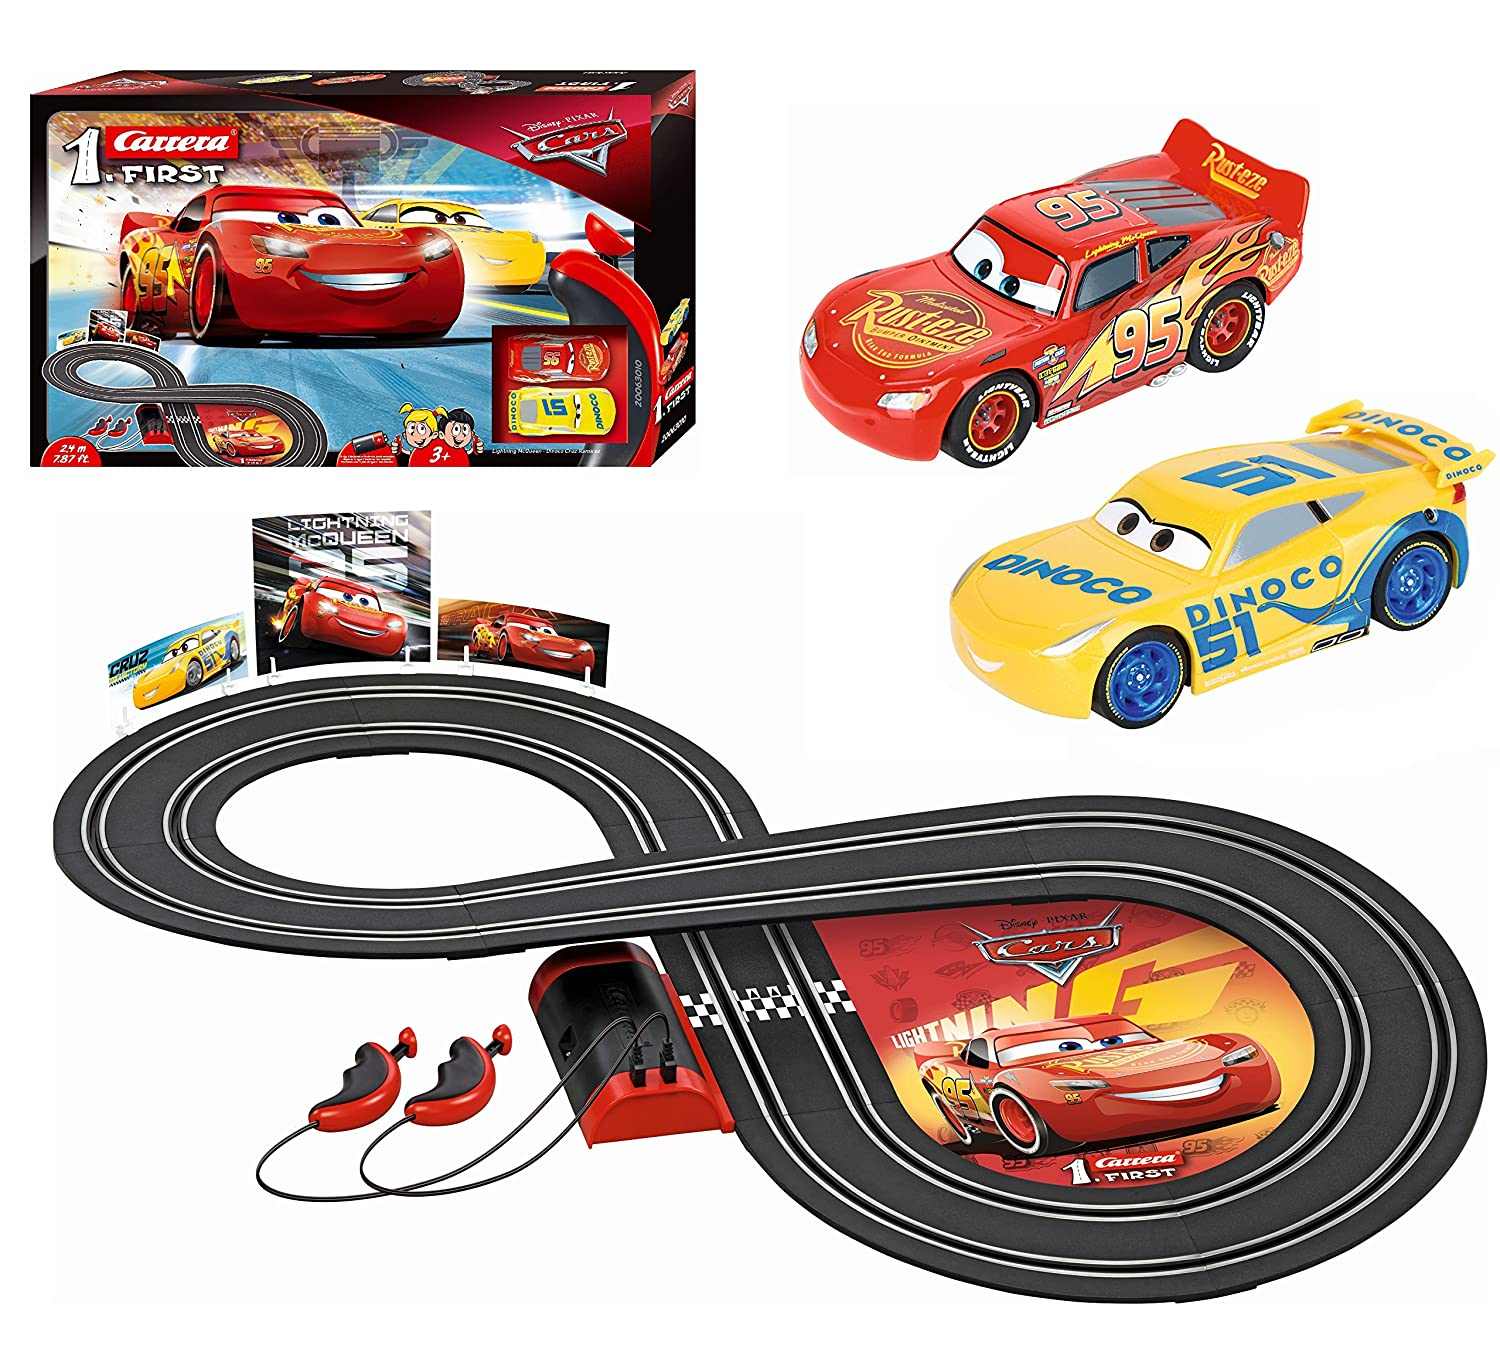 Carrera first disney pixar cars 3 slot car race track includes 2 cars lightning mcqueen and dinoco cruz battery powered beginner racing set for kids